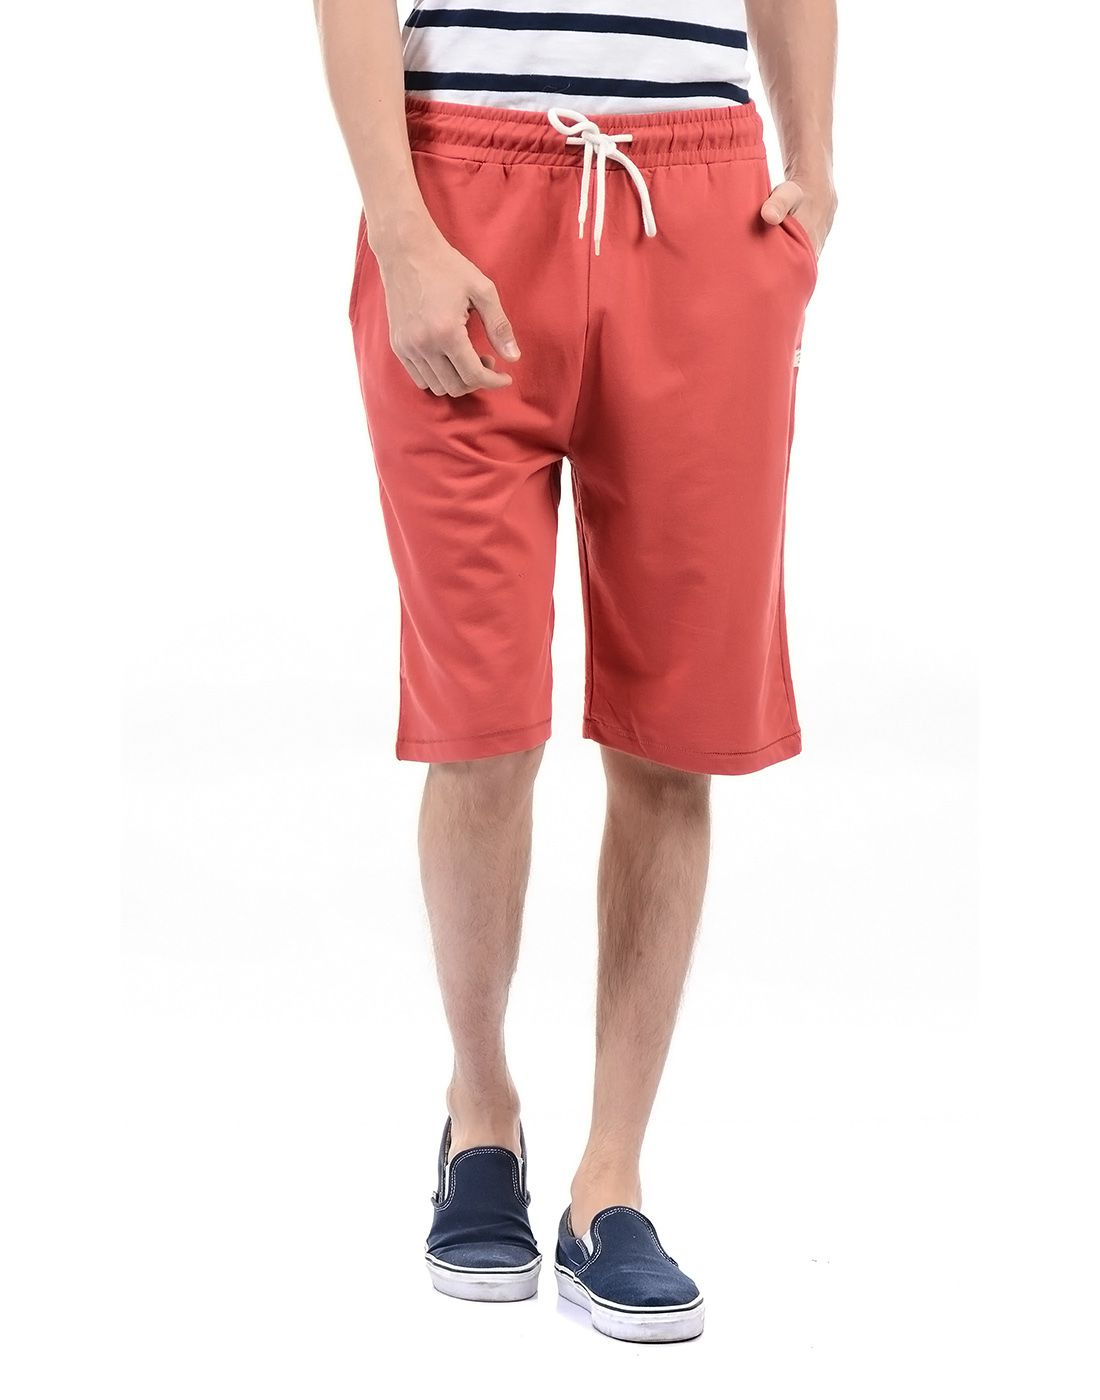 Pepe Jeans Red Shorts